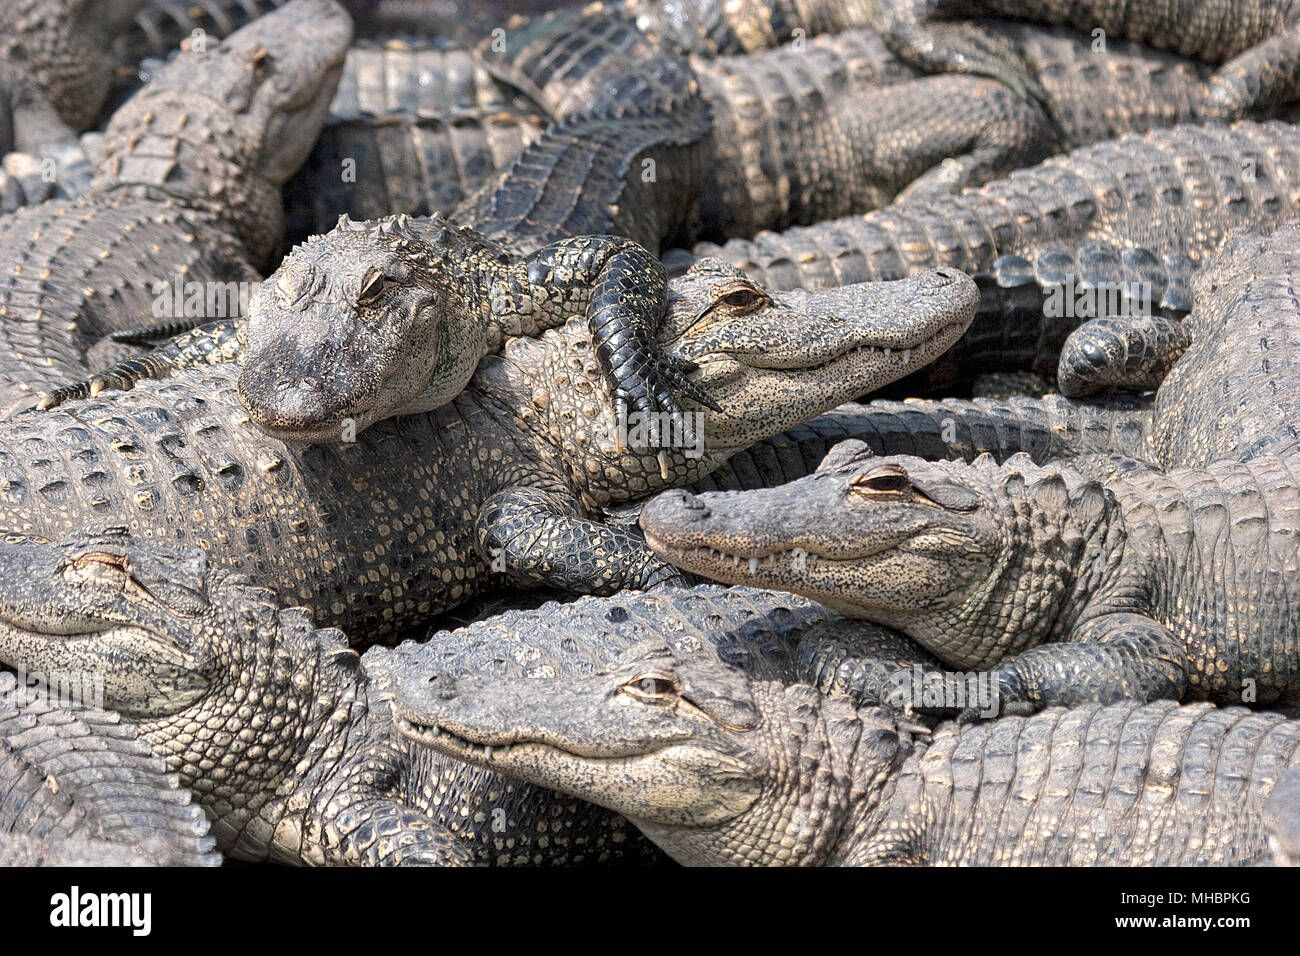 American alligators (Alligator mississippiensis), young animals one above the other, Everglades, Florida, USA Stock Photo